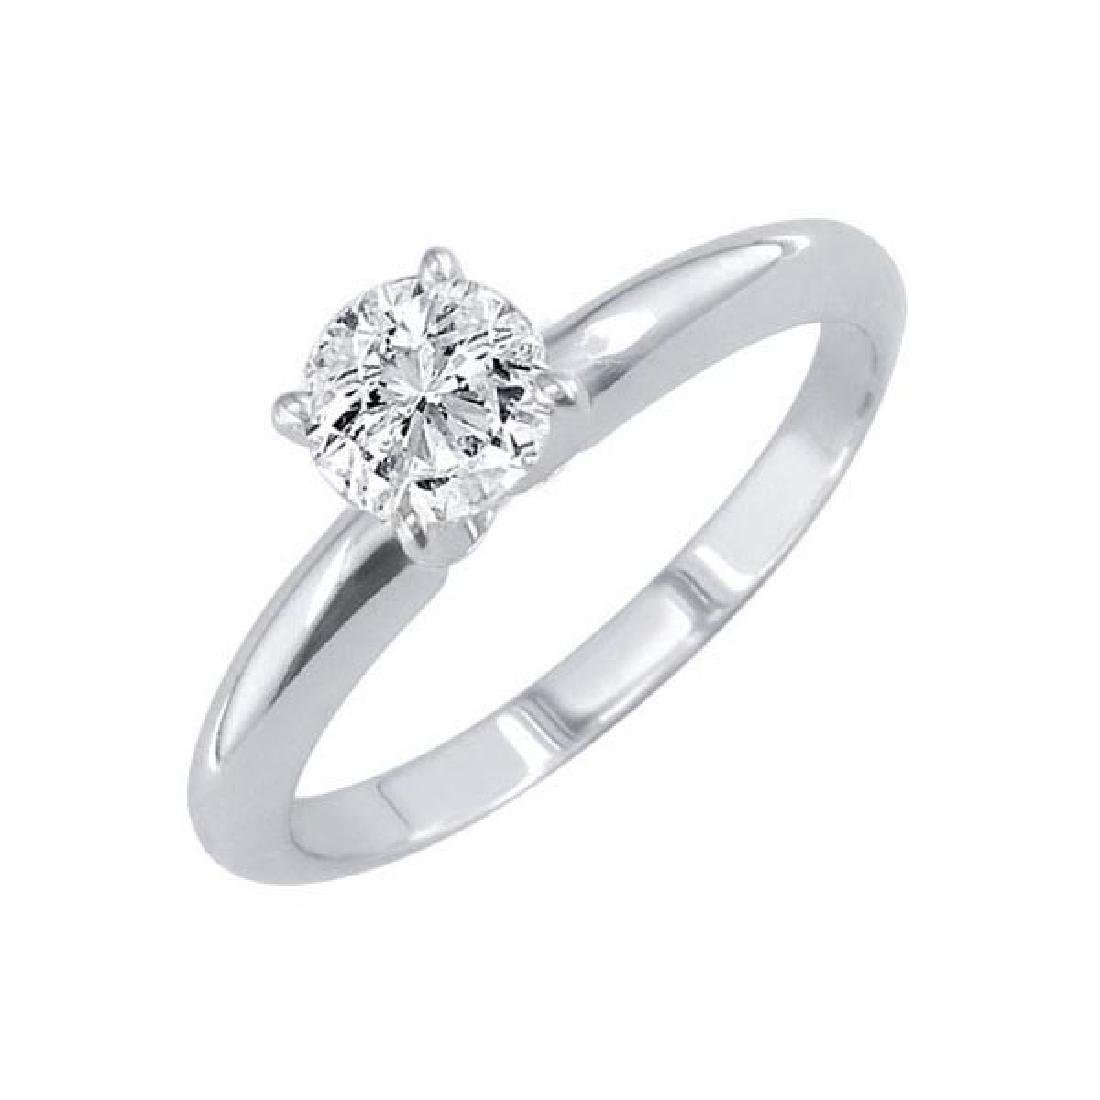 Certified 1.01 CTW Round Diamond Solitaire 14k Ring H/S